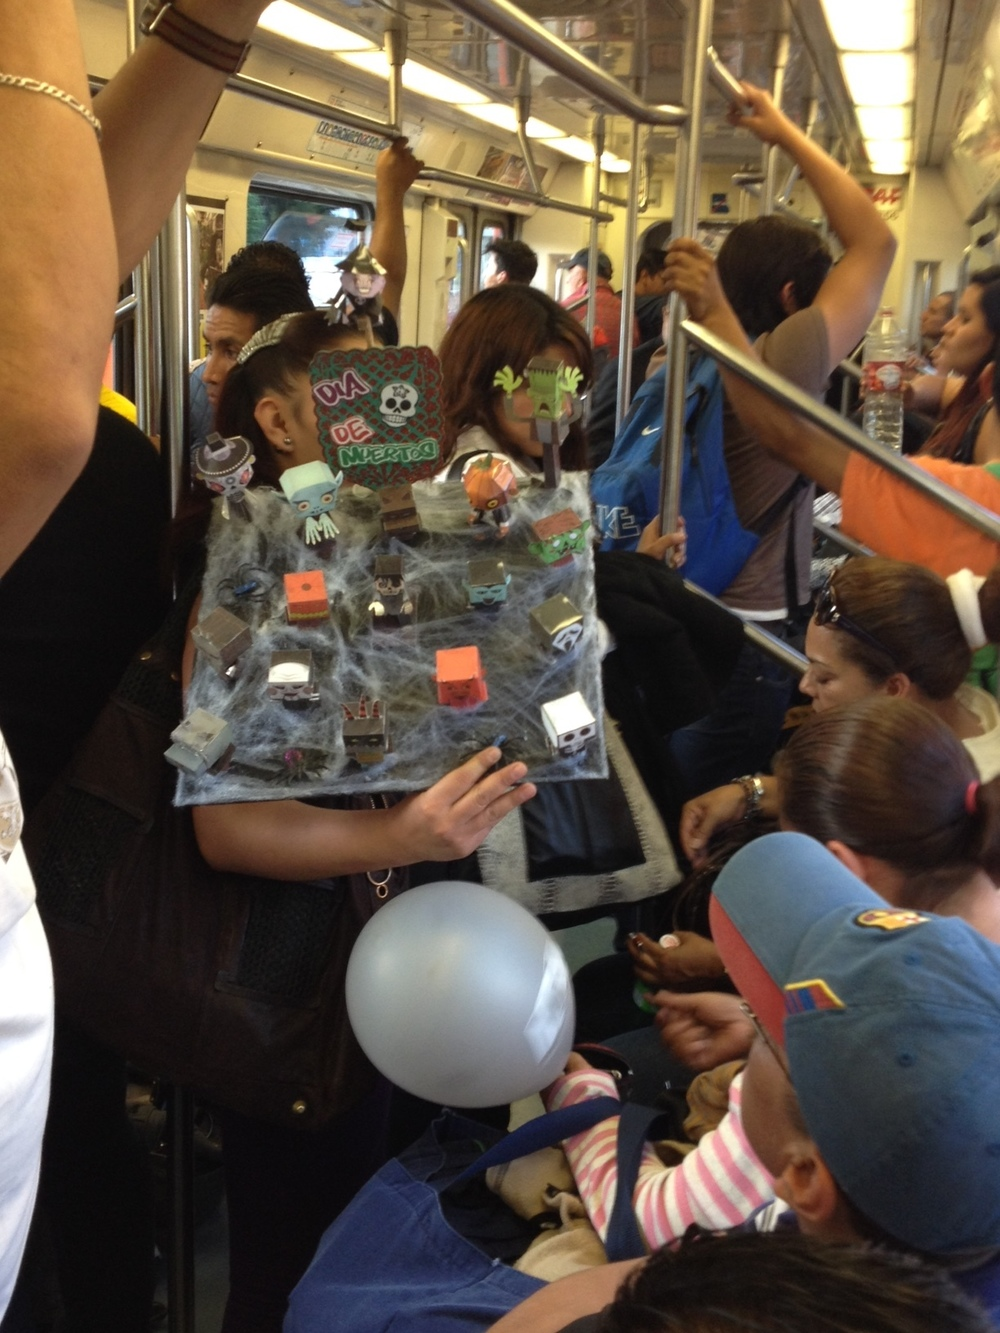 A crowded subway car with vendor selling trinkets for Day of the Dead in Mexico City, mid-afternoon.